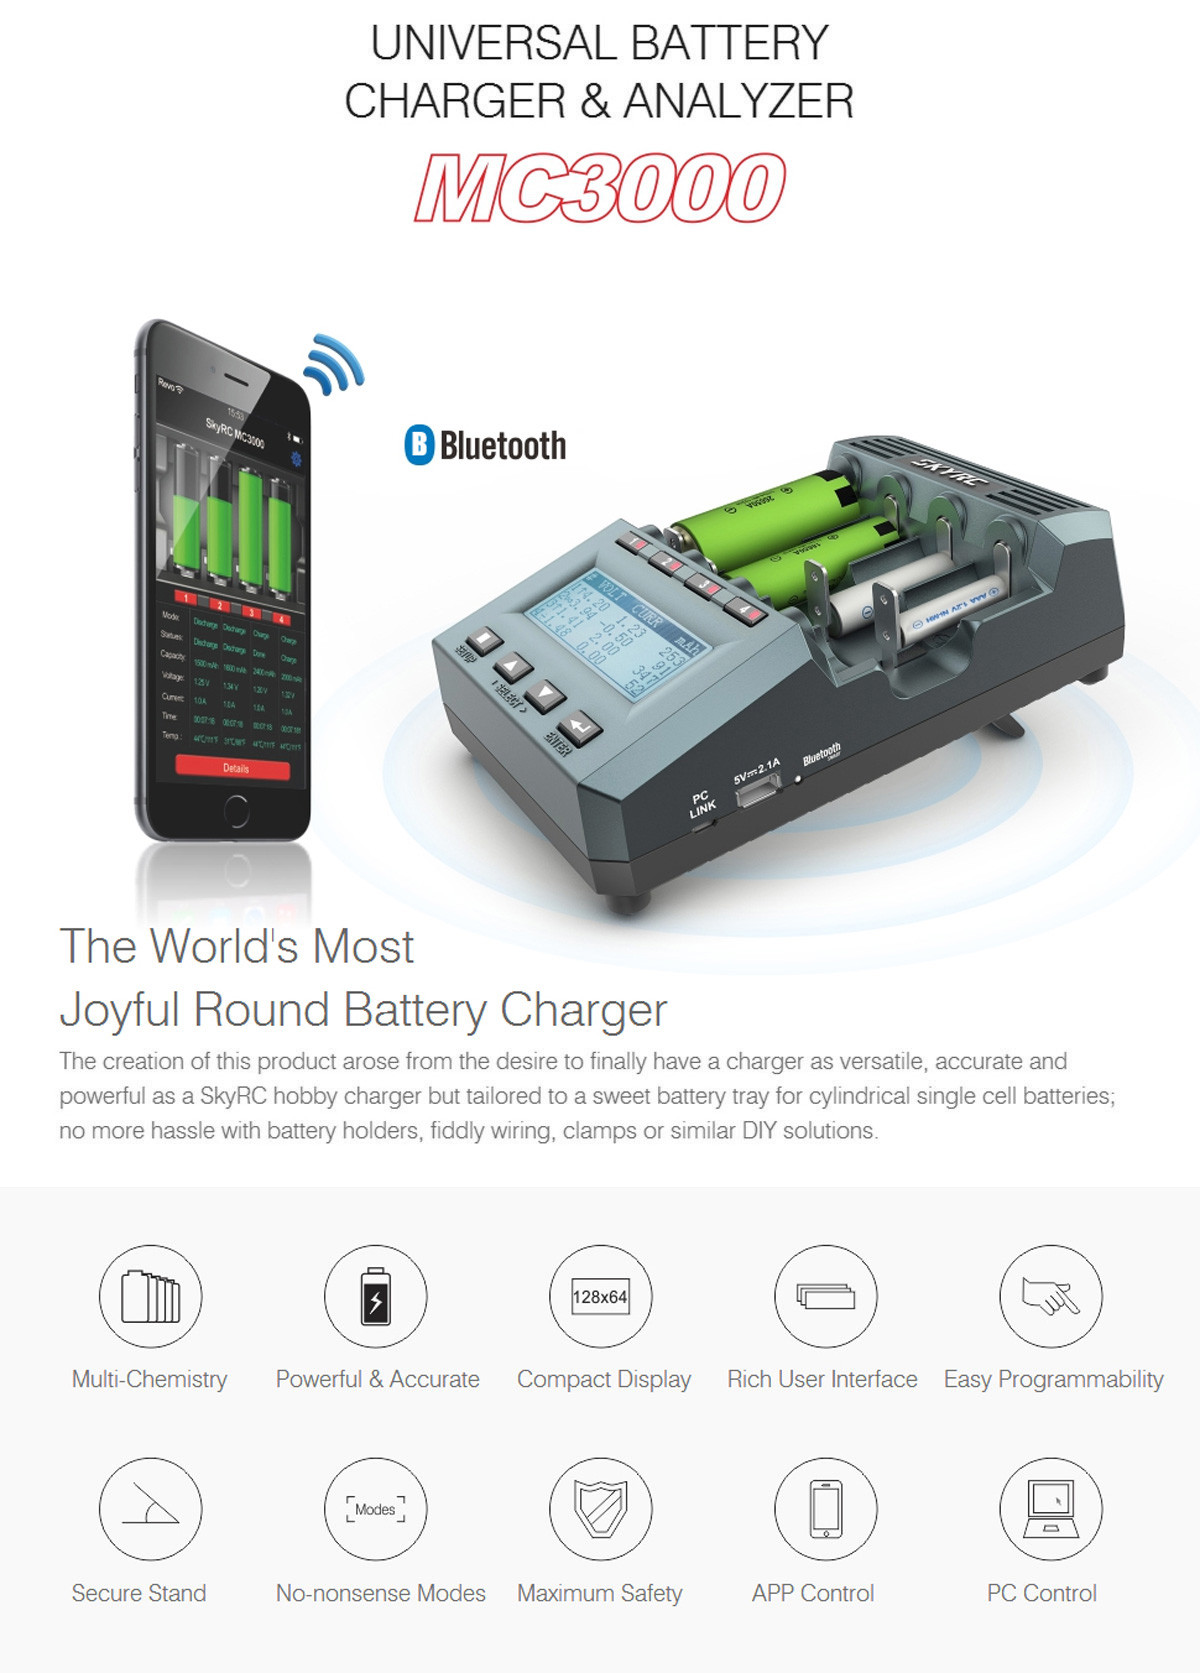 SKYRC MC3000 Bluetooth Smart Battery Charger